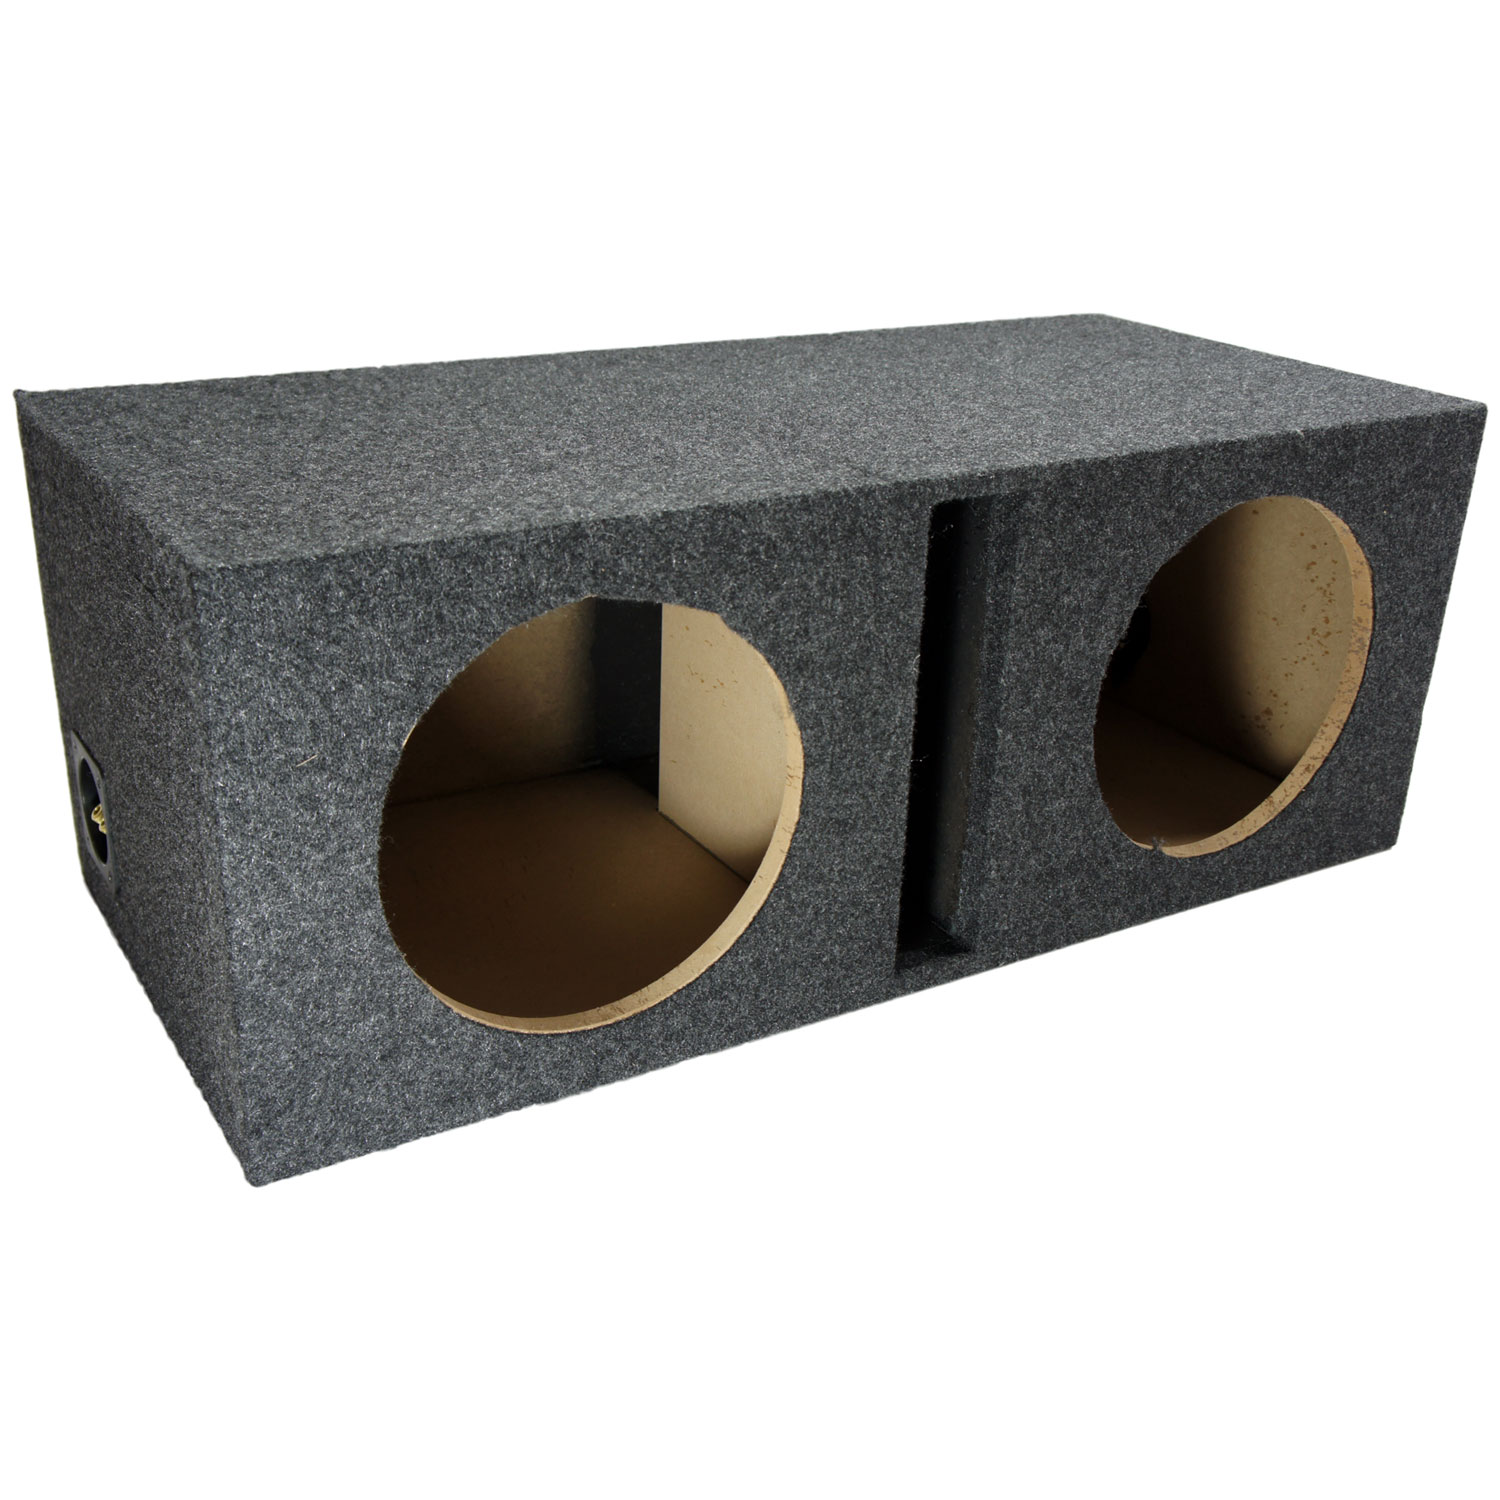 L ported dual subwoofer box design l free engine image for L ported speaker box